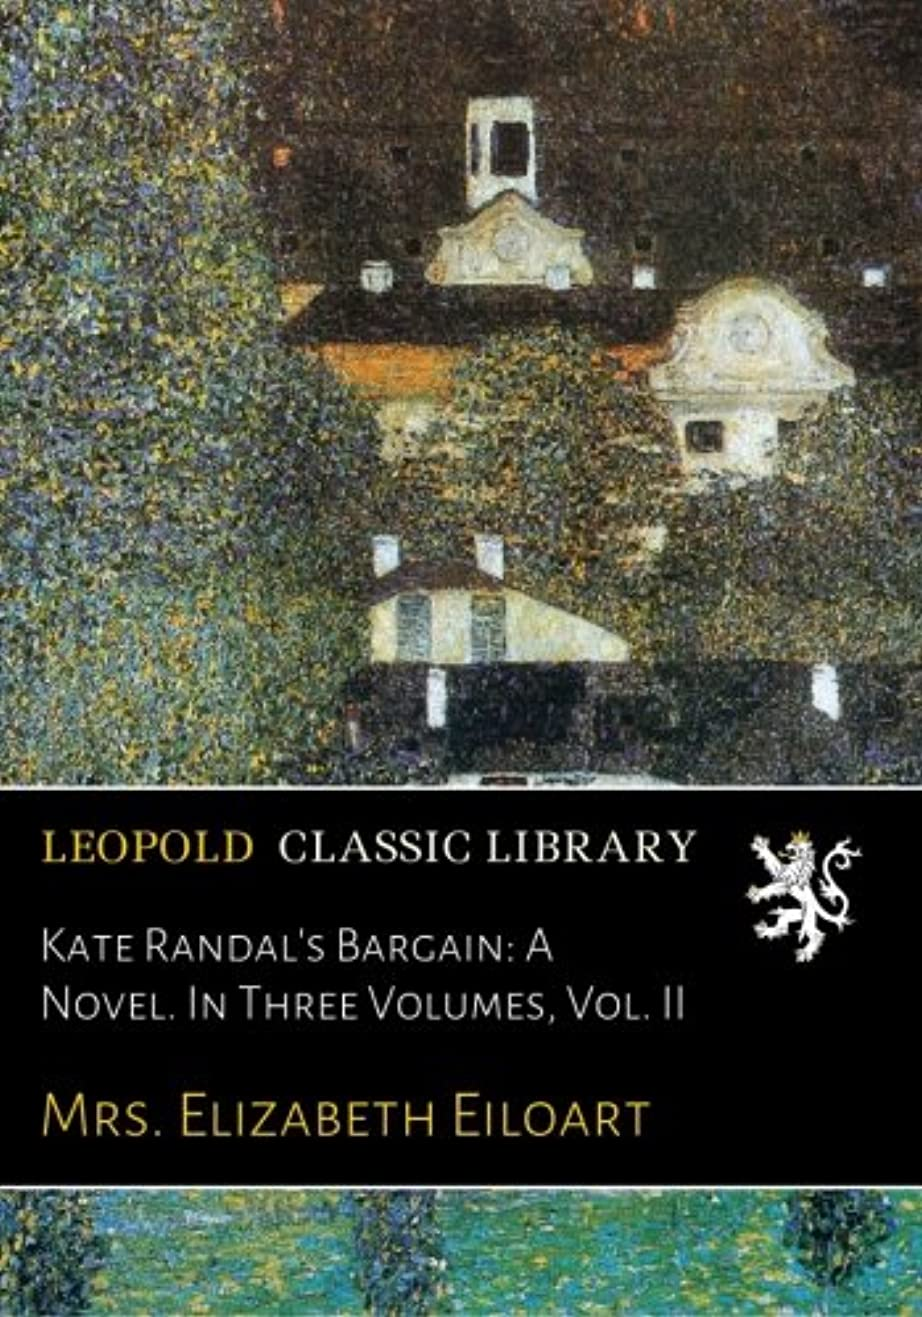 密度クリスマスピッチャーKate Randal's Bargain: A Novel. In Three Volumes, Vol. II